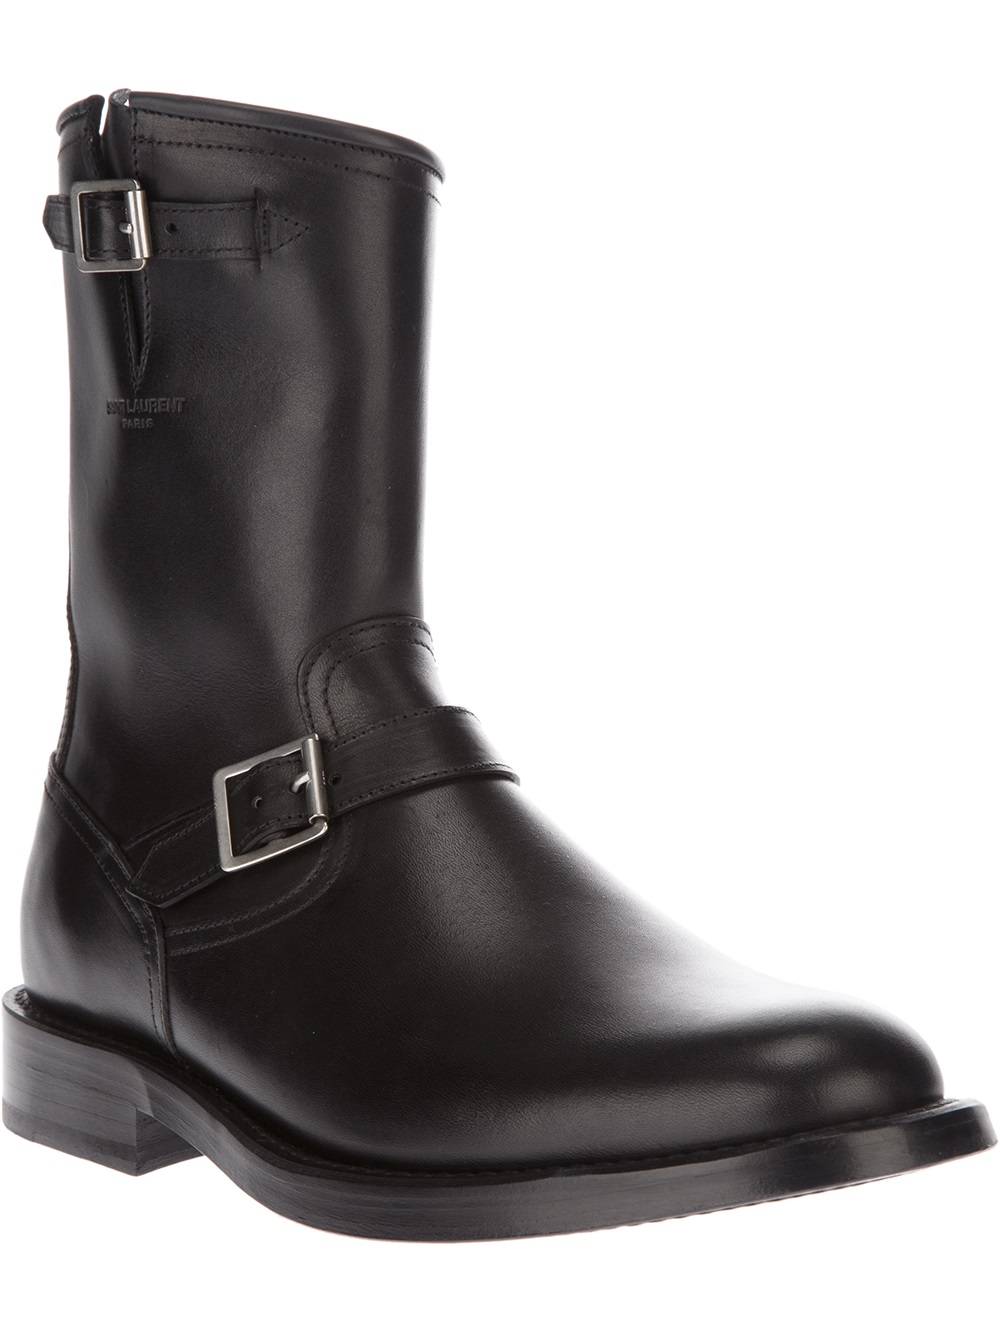 Saint Laurent Classic Engineer Boot in Black for Men